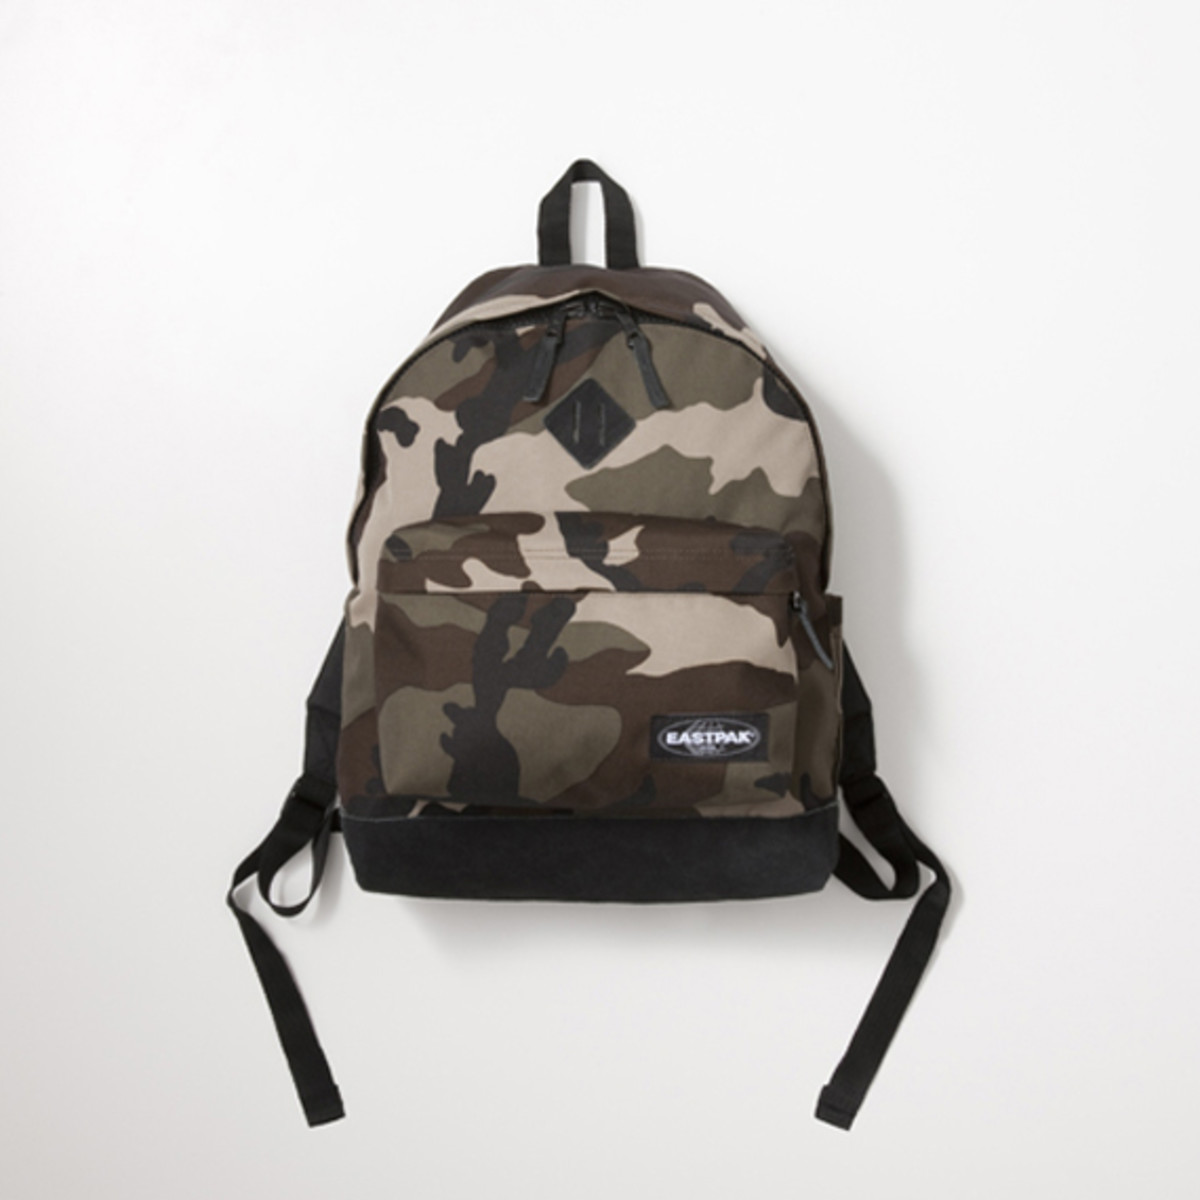 Authentic Woodstock Backpack Camouflage